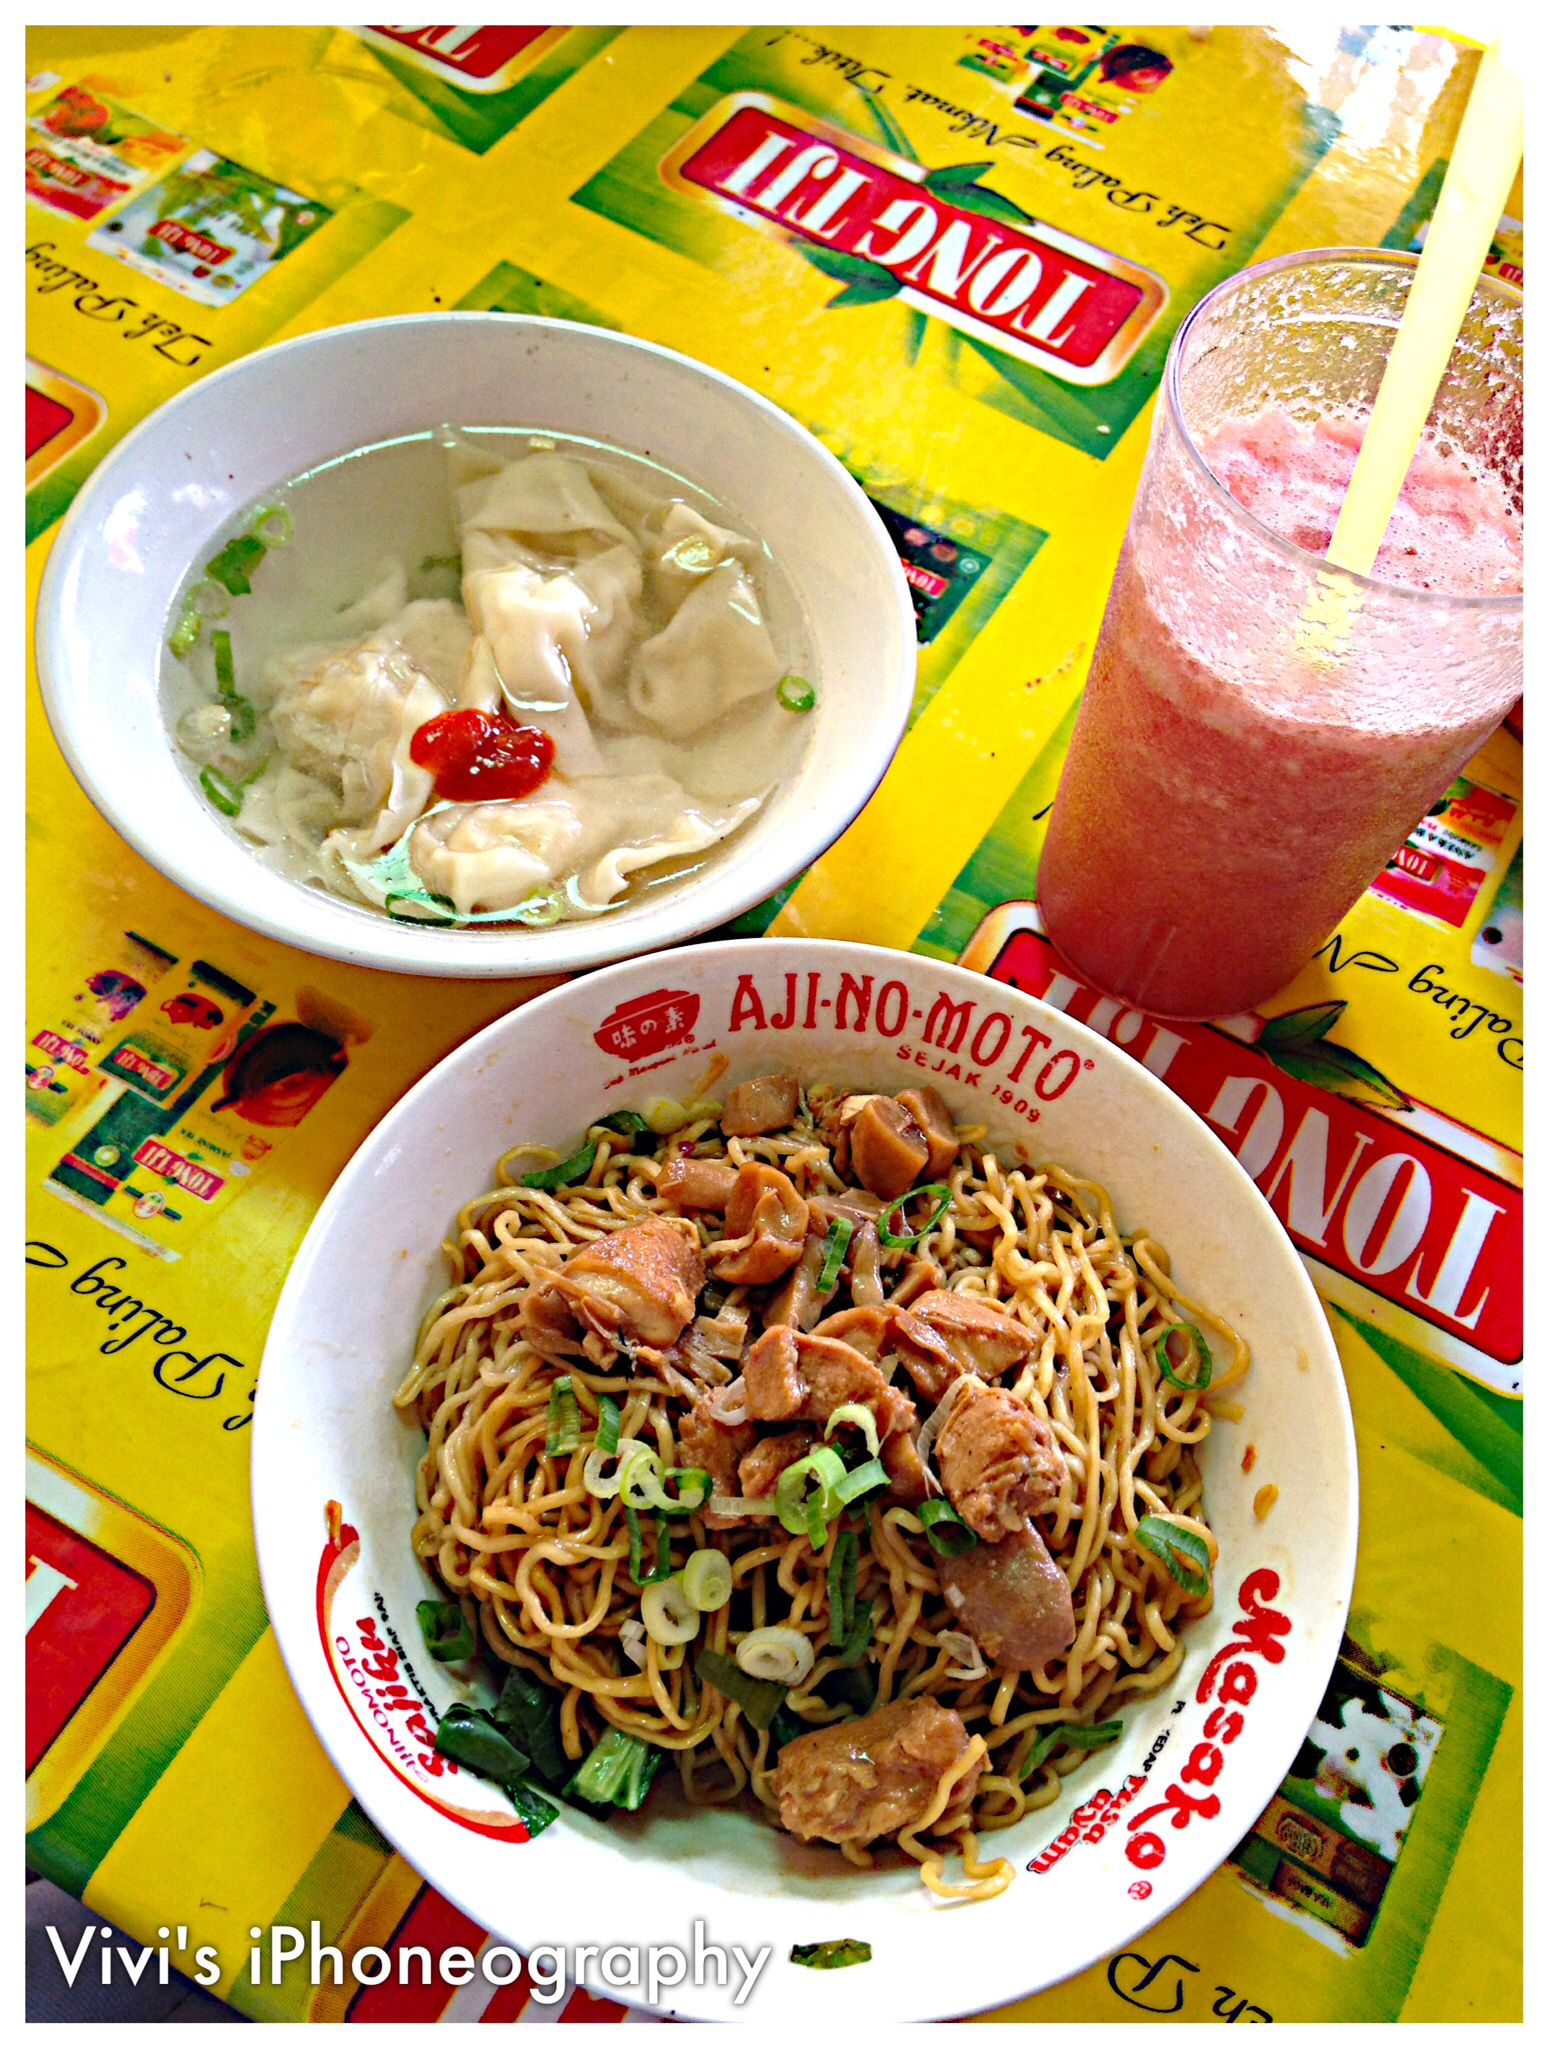 Mie Colot Yamin Manis Noodle Mix With Sweet Soy Sauce Cirebon Indonesia Copyrights Vivi Kembang Tanjoeng